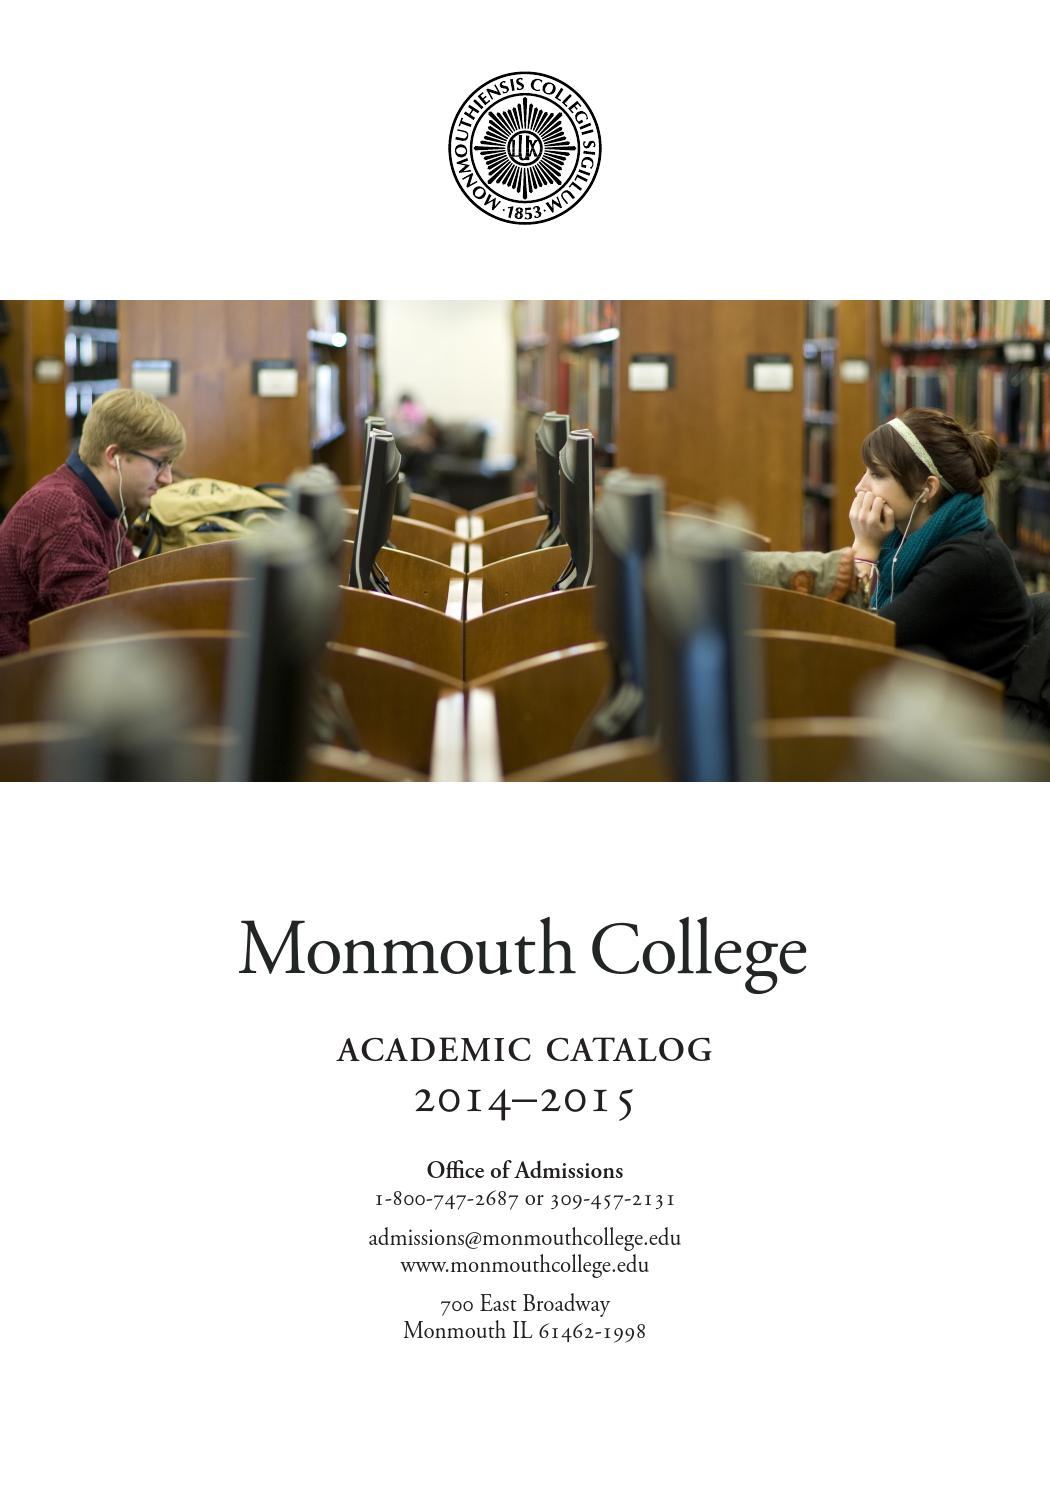 Monmouth College Catalog 2014 2015 By Issuu Dc Thevenin Equivalent Example 1 Youtube